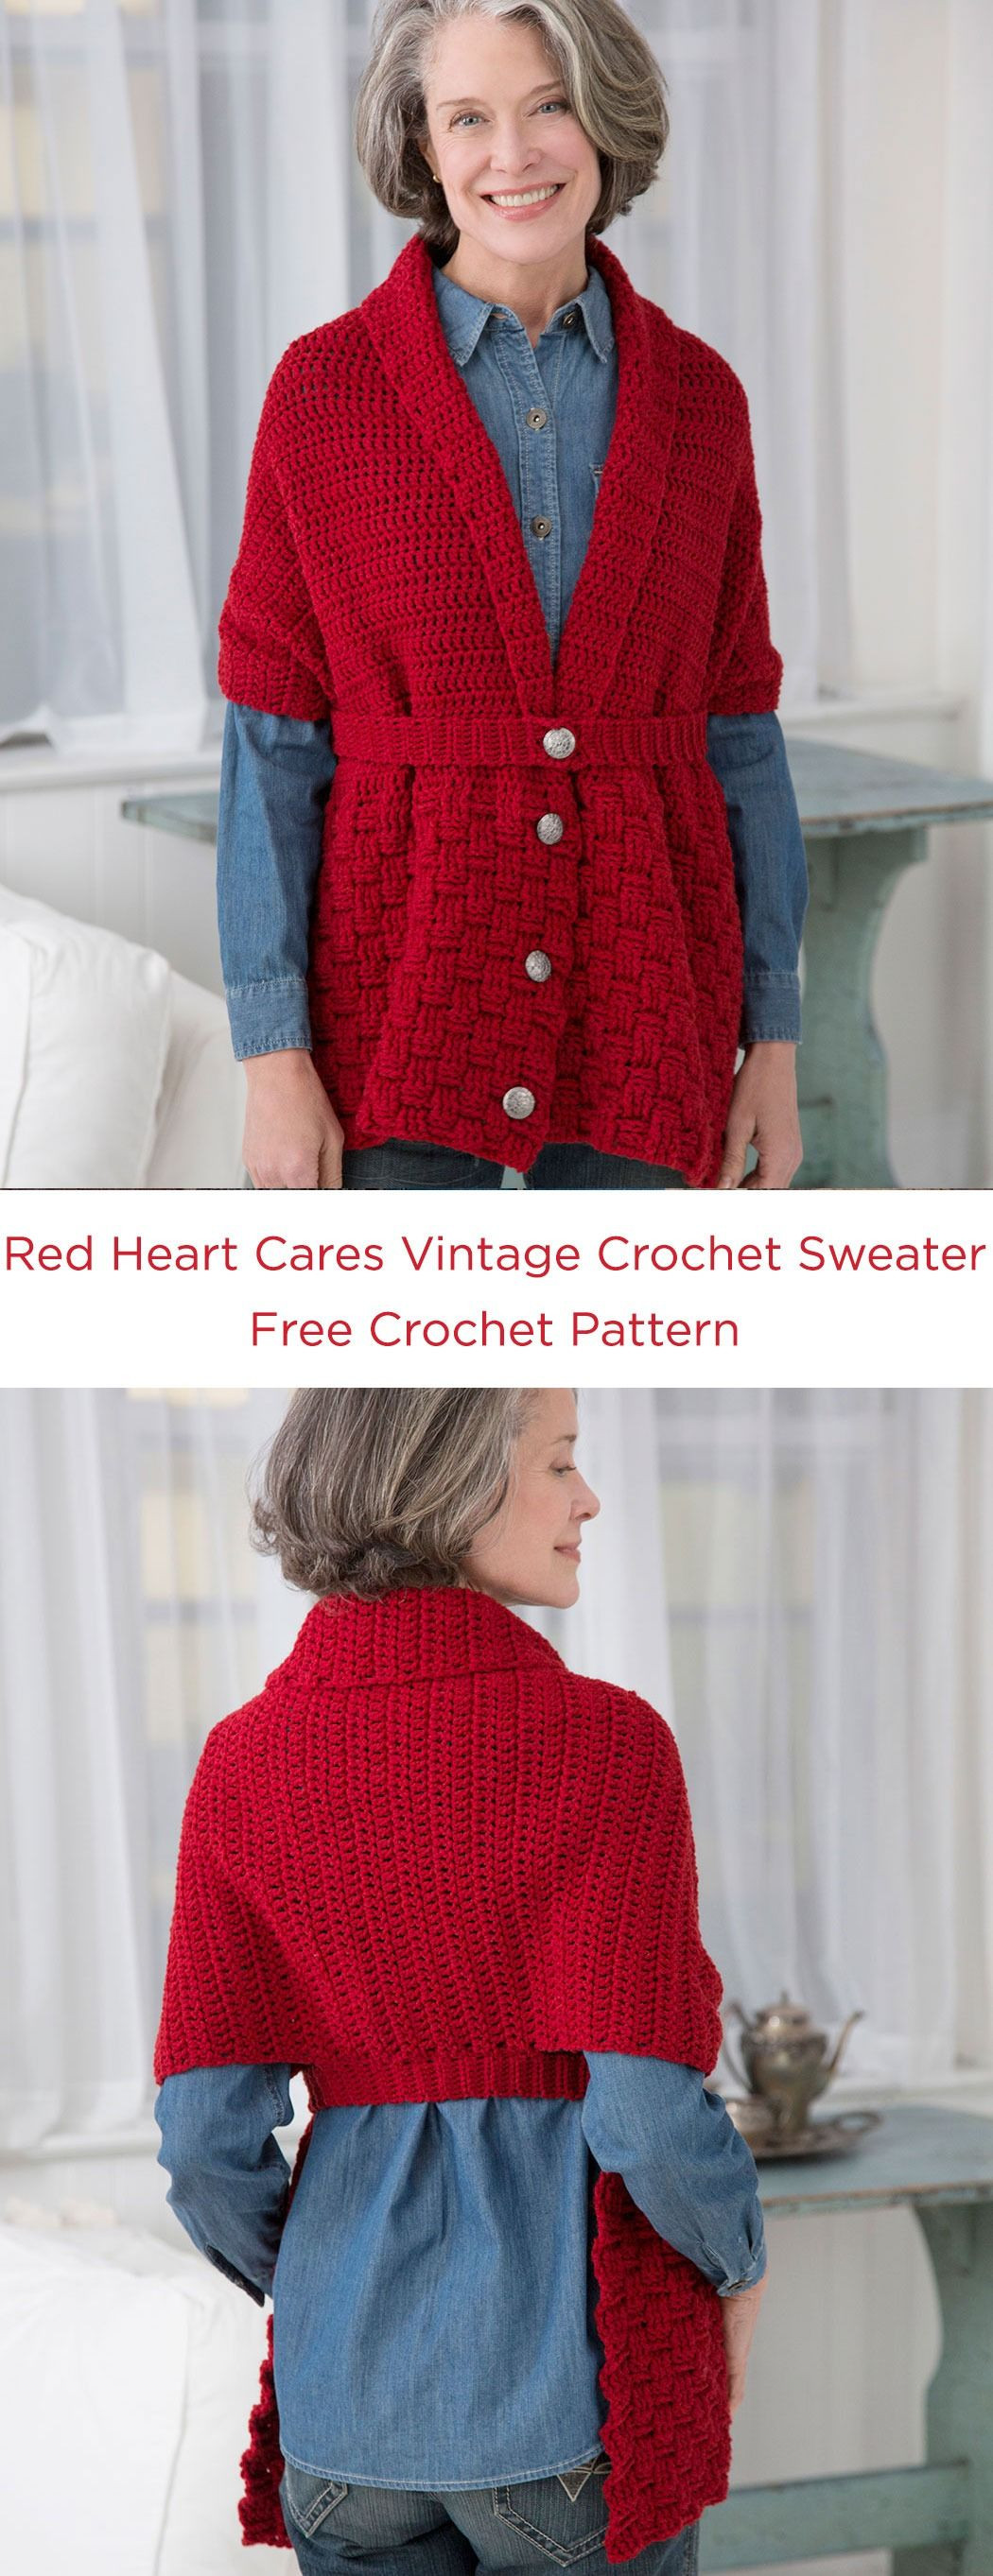 Red Heart Crochet Best Of Red Heart Cares Vintage Crochet Sweater Free Crochet Of Contemporary 50 Models Red Heart Crochet